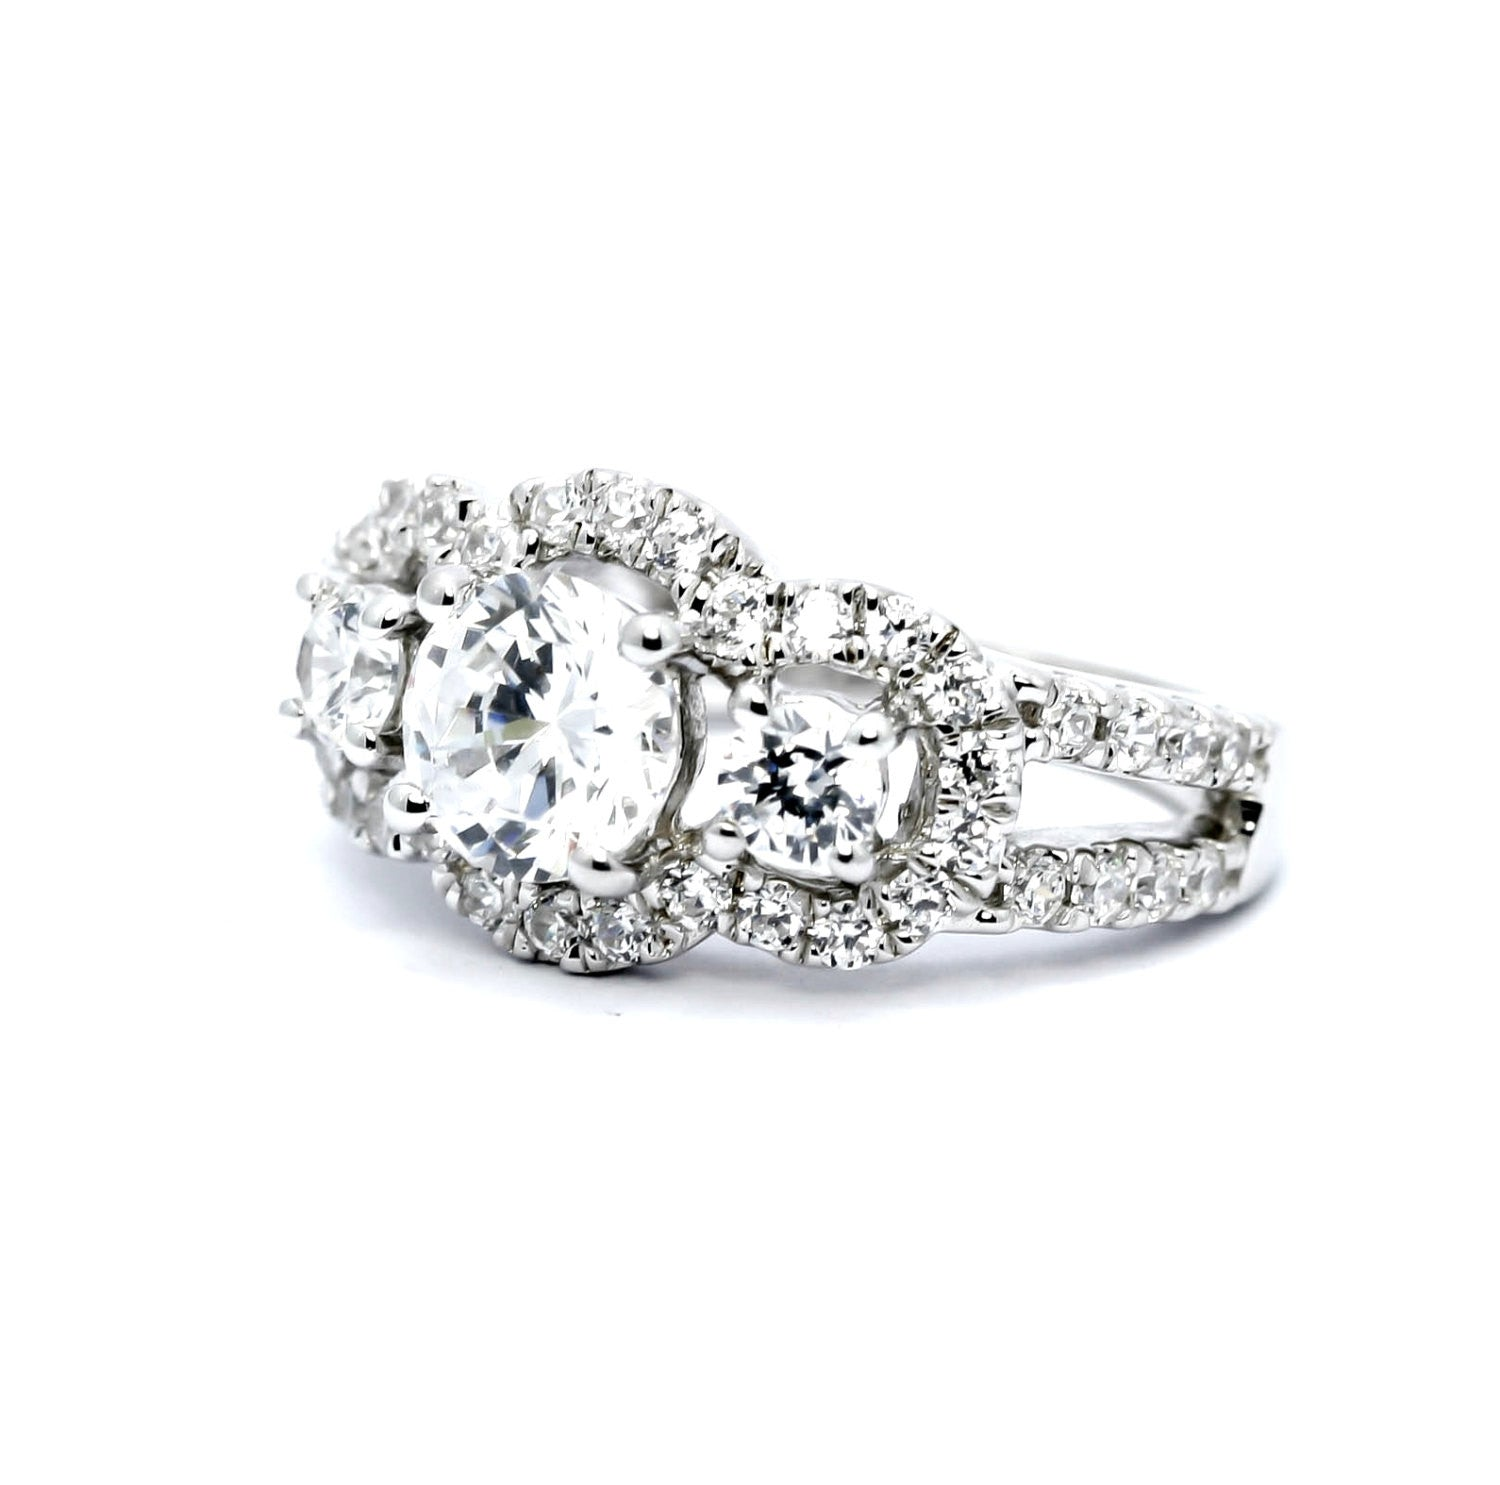 Semi Mount 3 Stone Halo Engagement Ring Unique For 1 Carat Center Stone Has 1.30 Carat Of Diamonds, Split Shank Anniversary Ring - Y11610